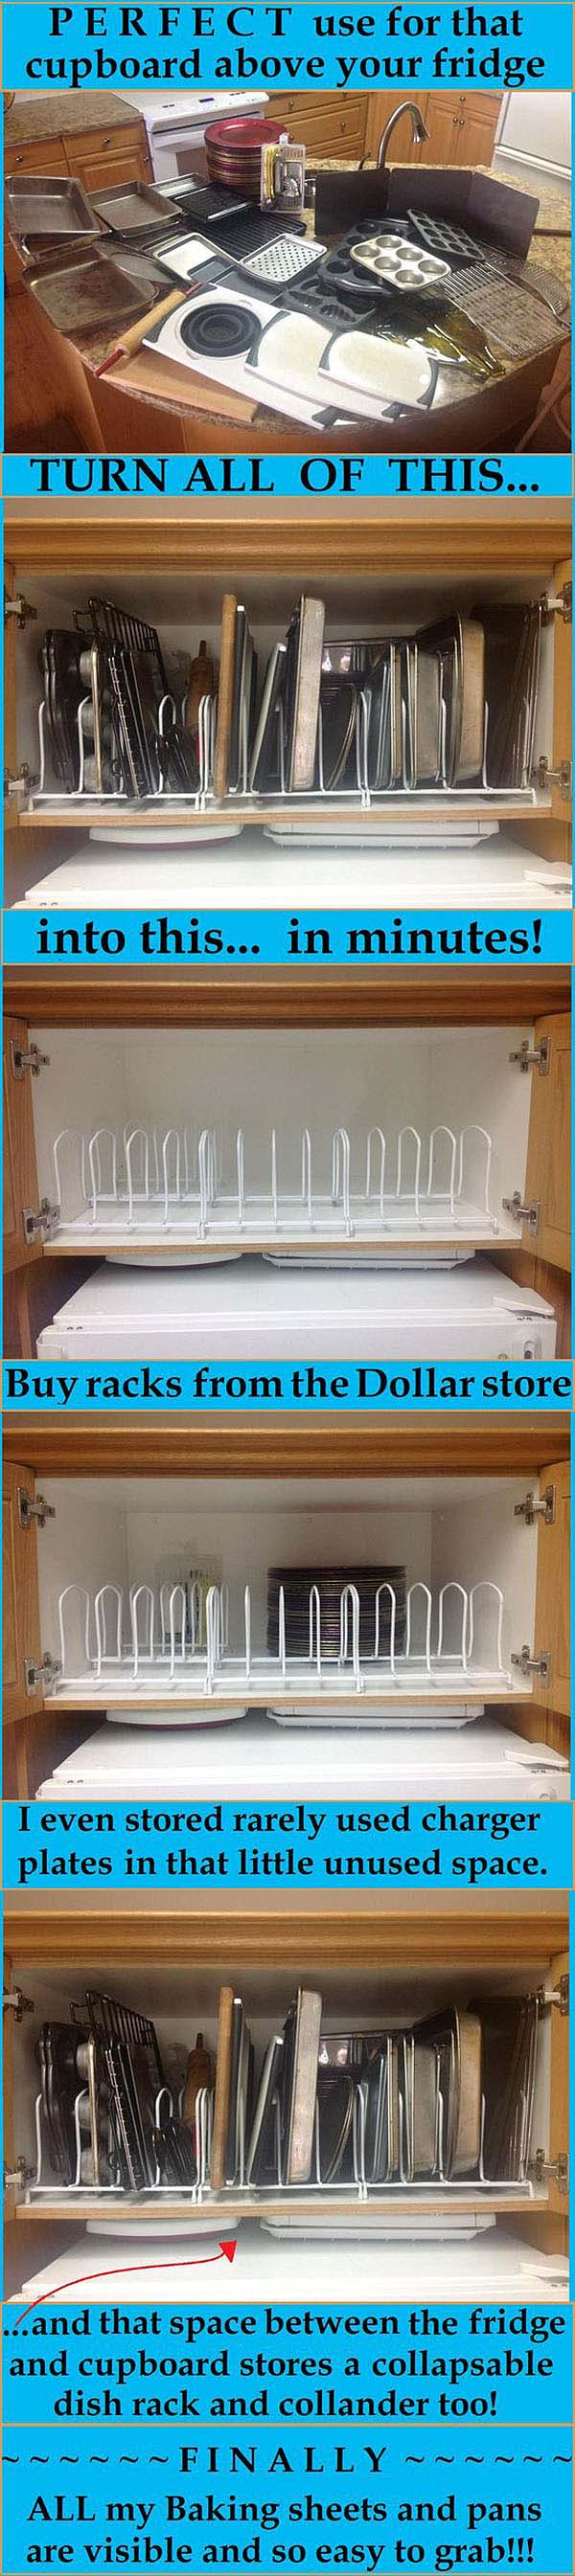 Dollar Store Dish Racks To Separate The Pans #smallkitchen #storage #organization #decorhomeideas